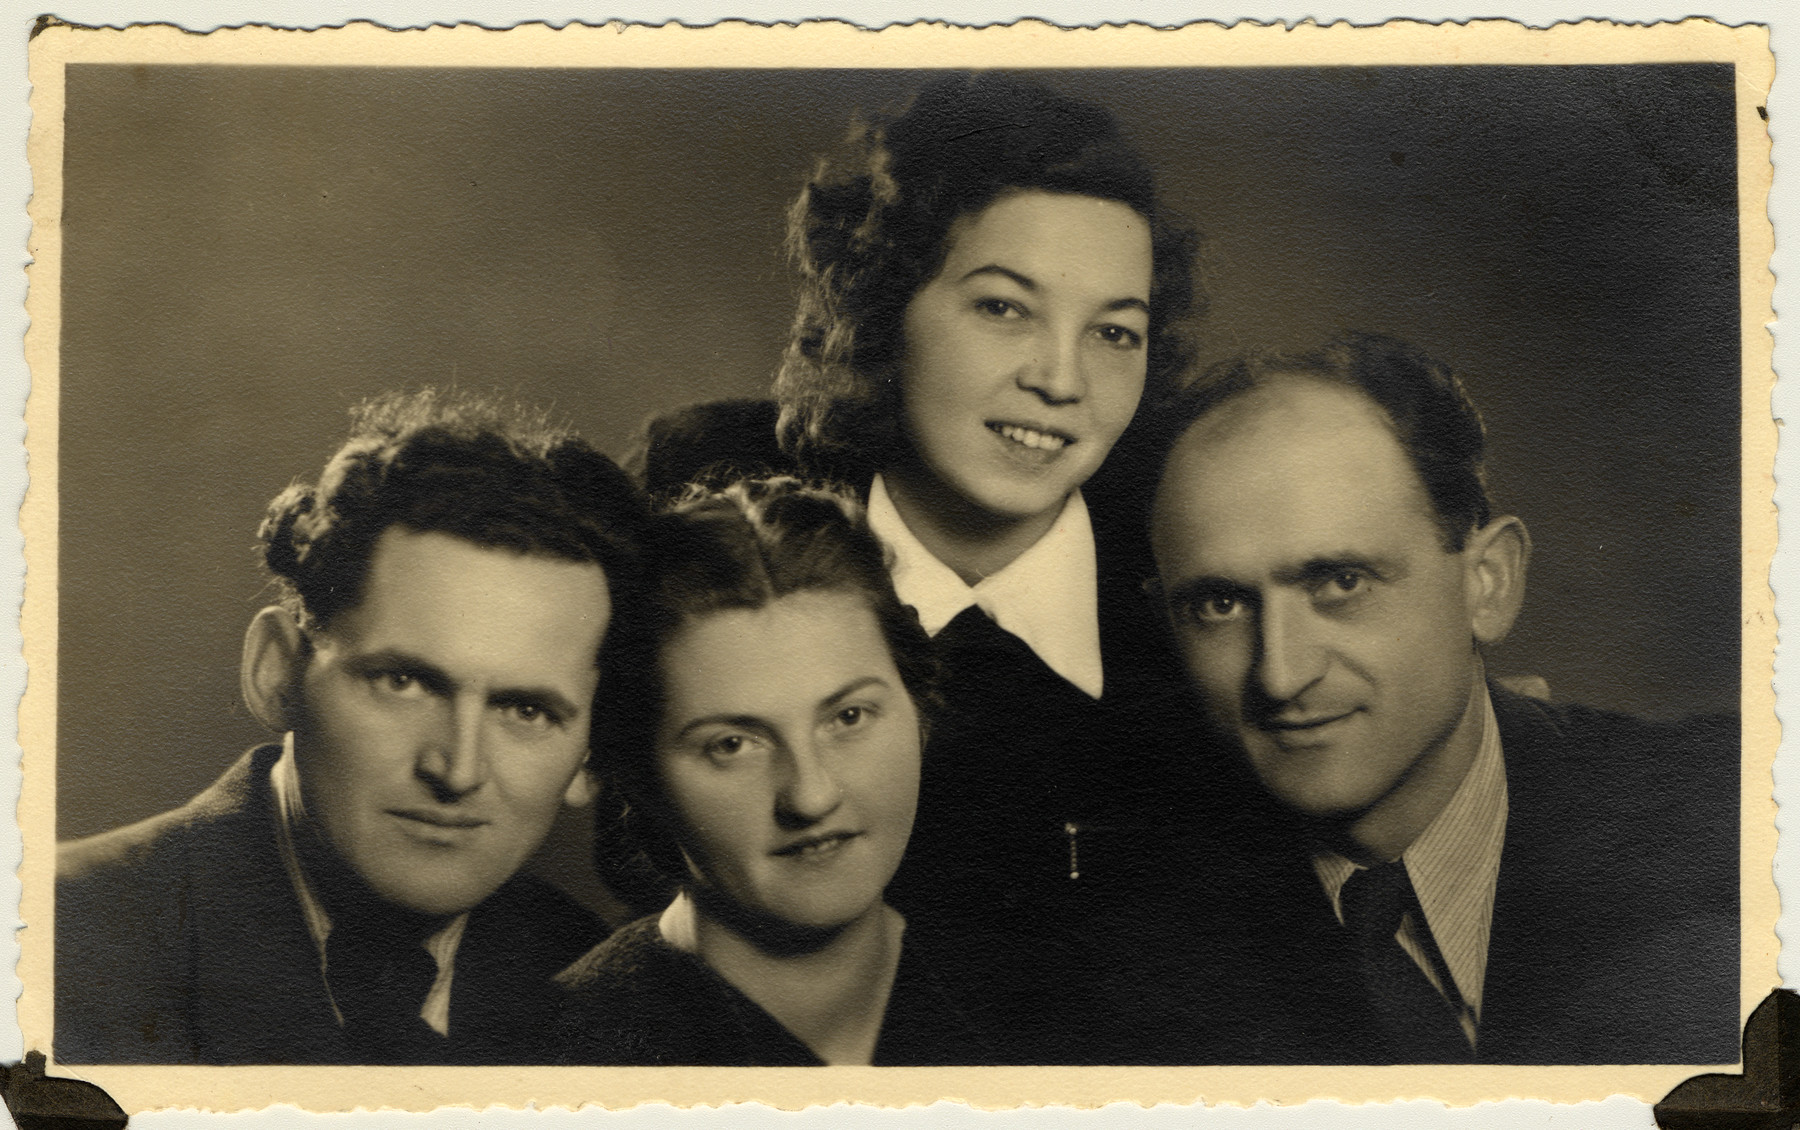 Giustina (Papo) Dragojevic and husband Jevrem, right, pose for a portrait with Jevrem's brother, Milan, and wife Ruza.